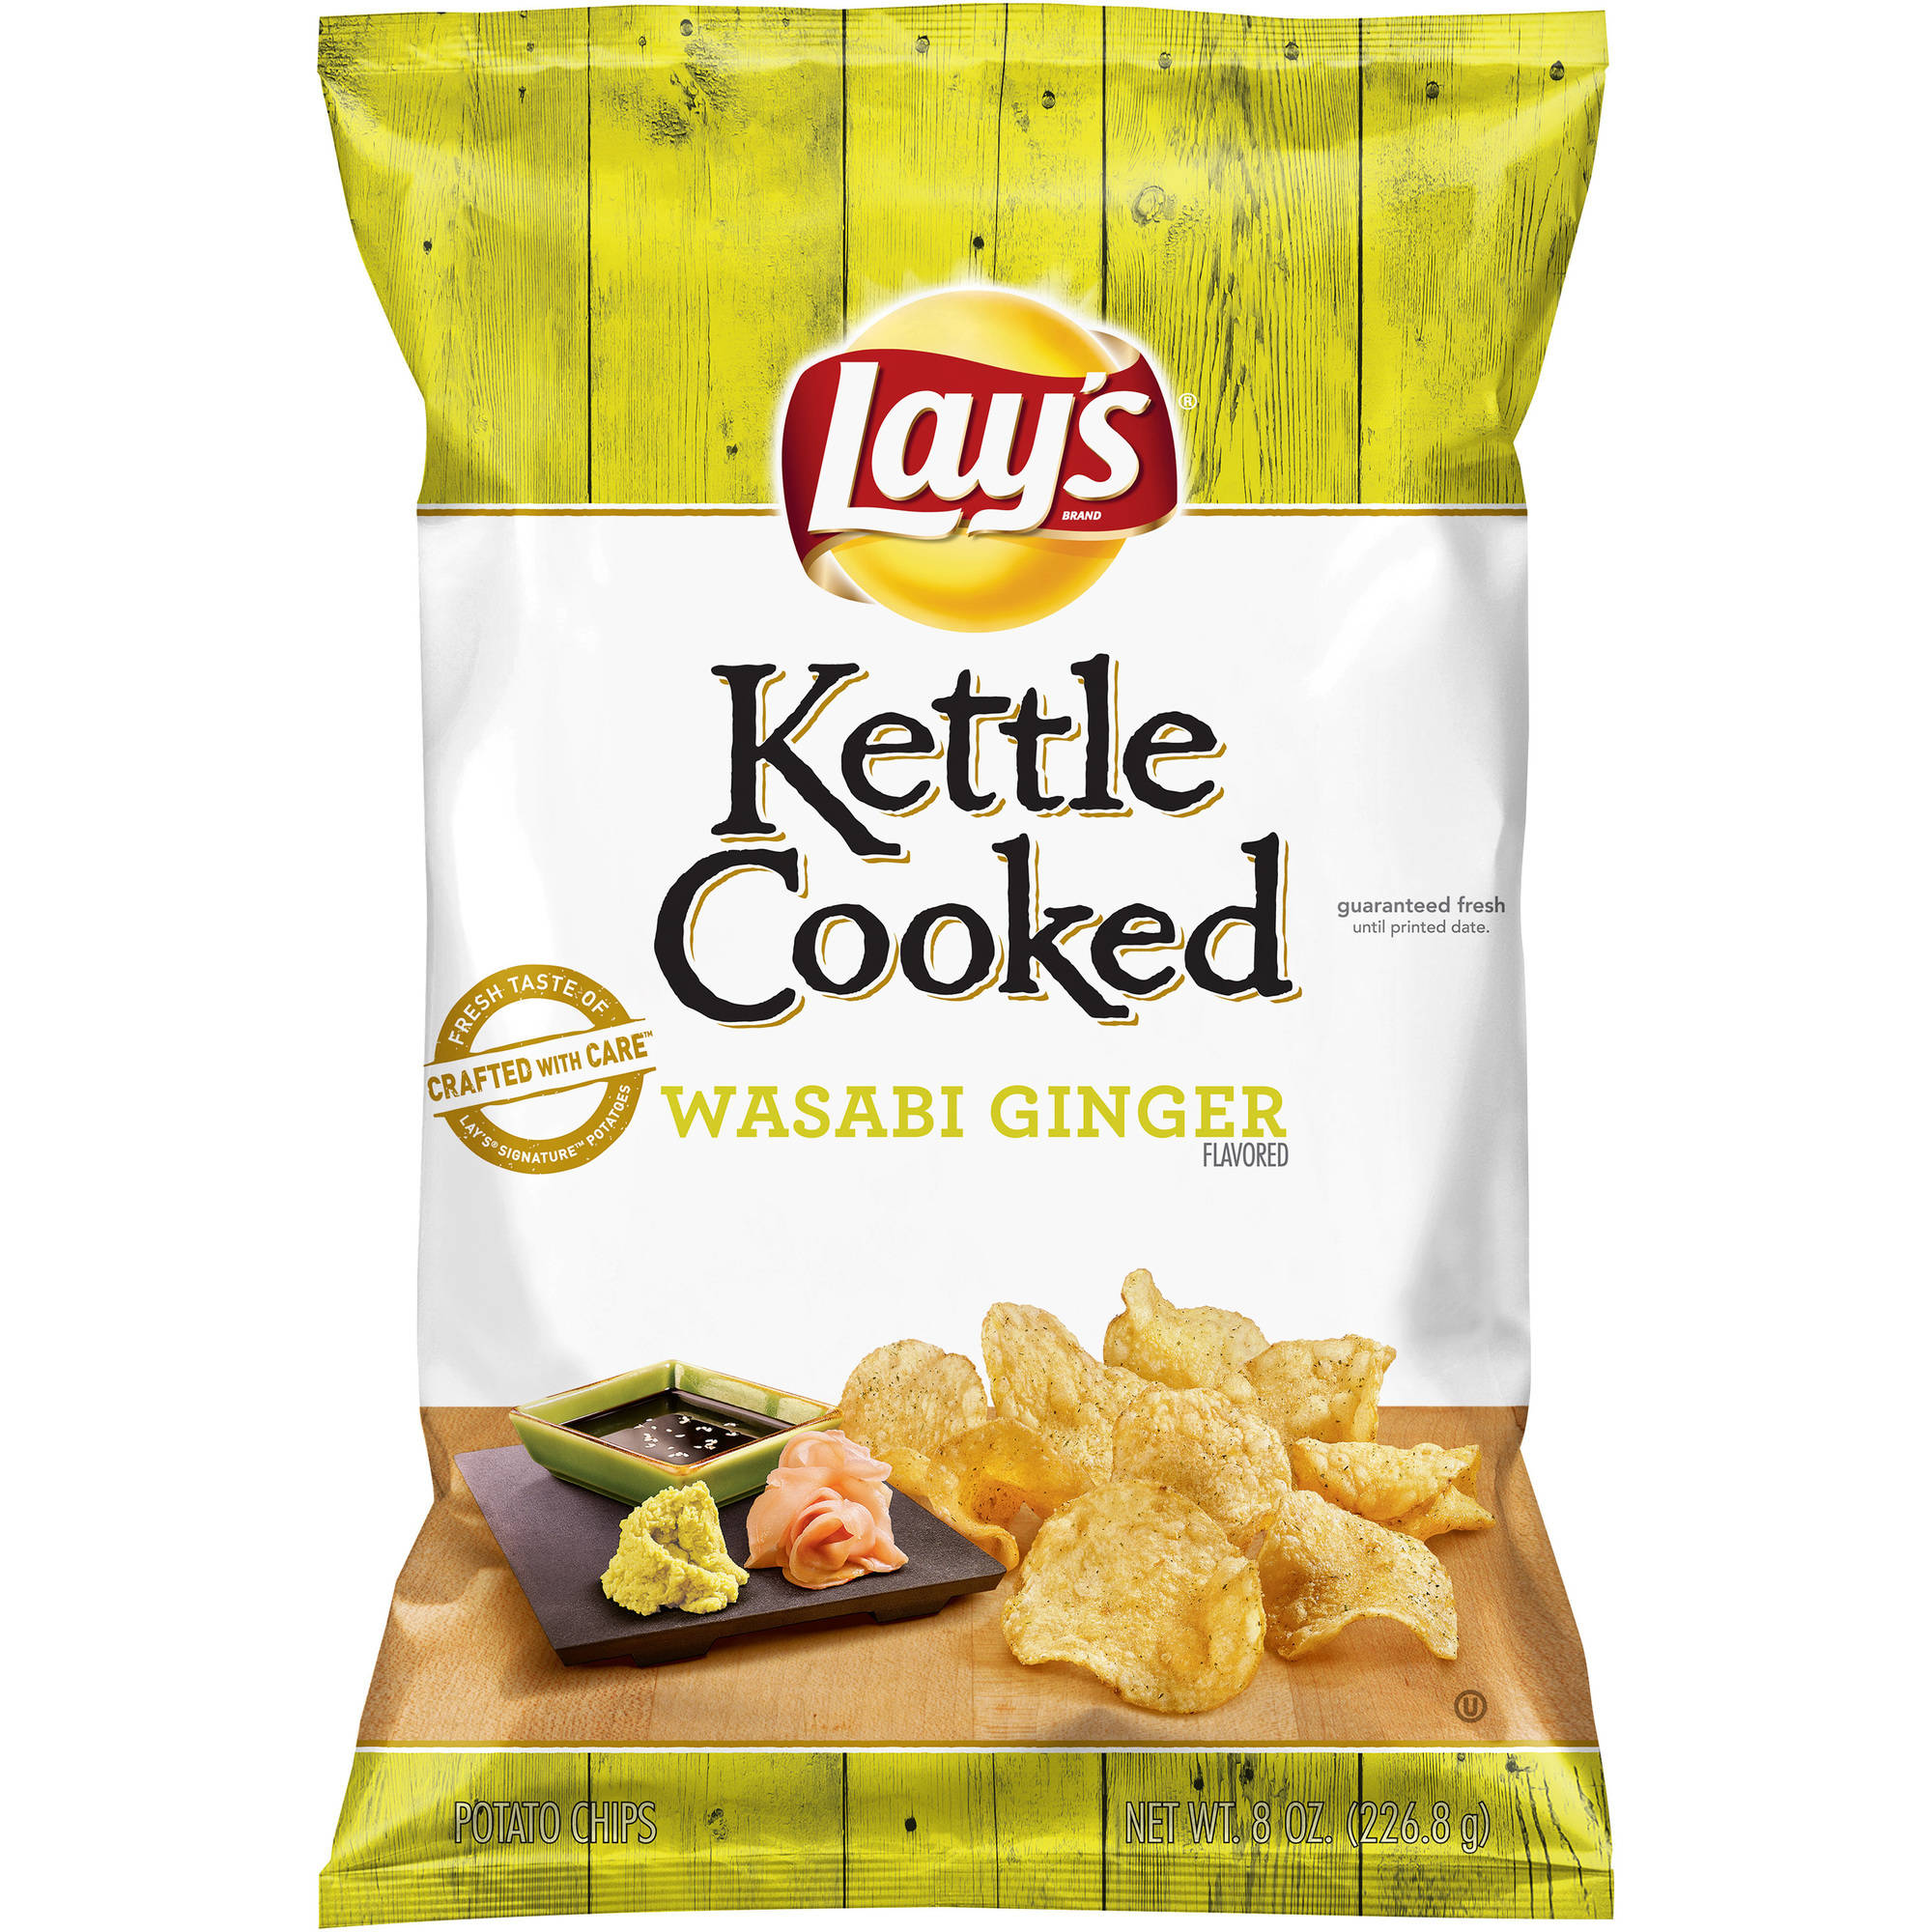 Lay's Kettle Cooked Wasabi Ginger Flavored Potato Chips, 8 oz